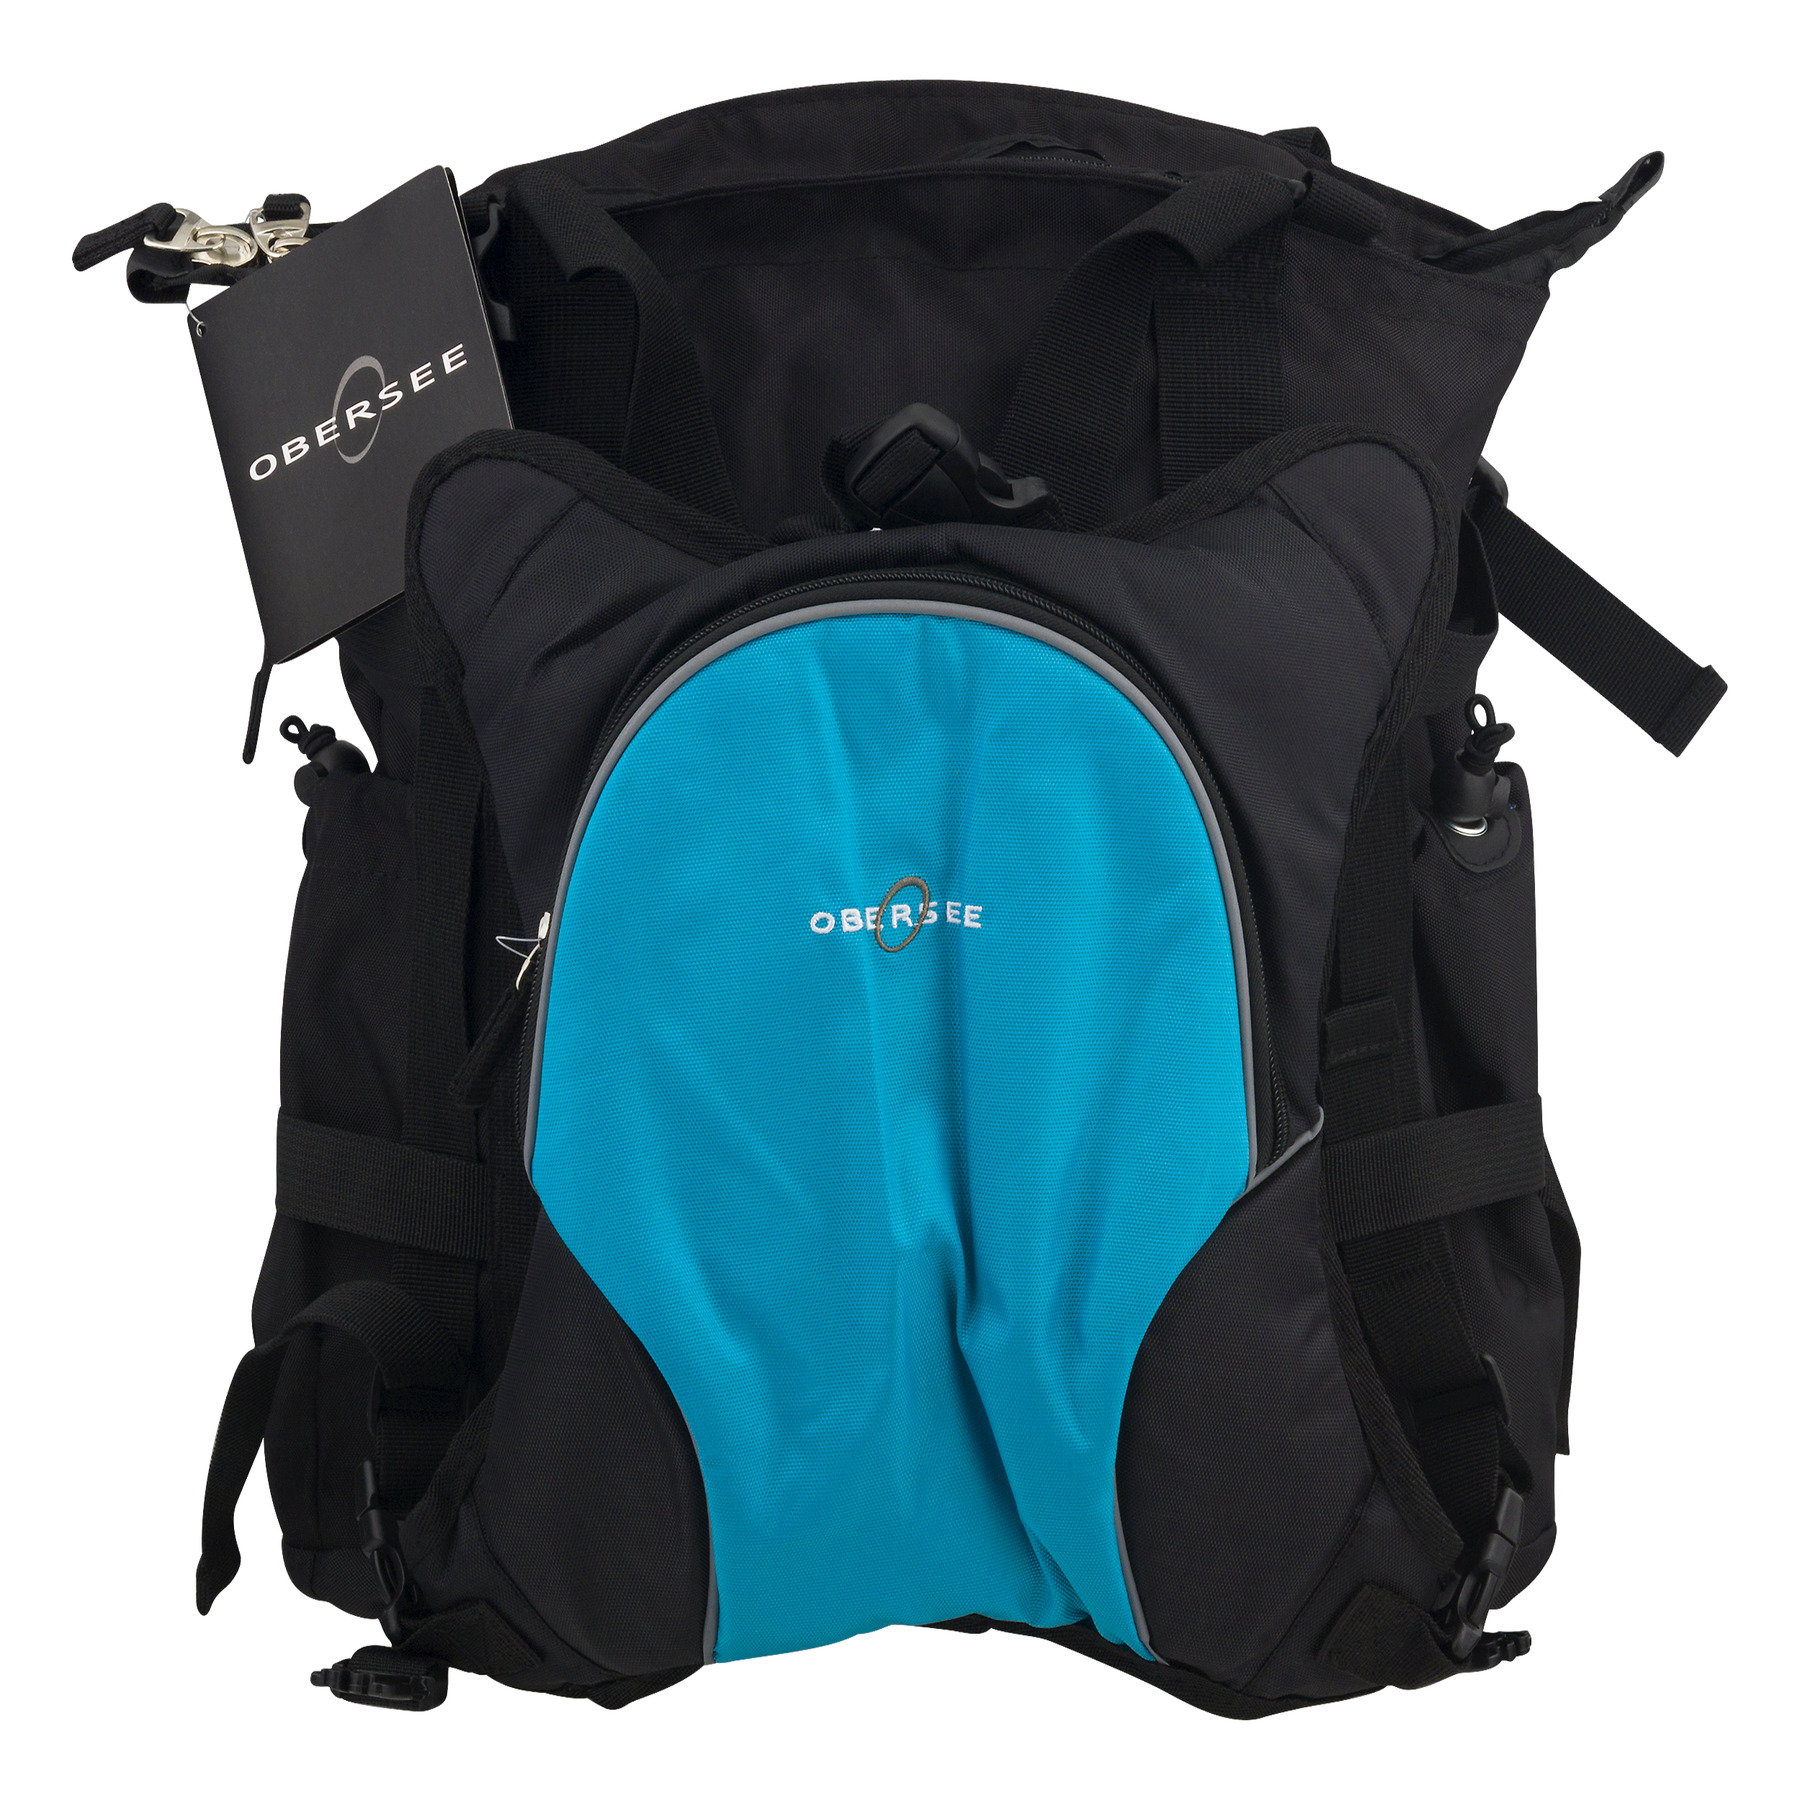 Obersee Innsbruck Diaper Bag Tote With Cooler Black/Turquoise, 3.0 CT